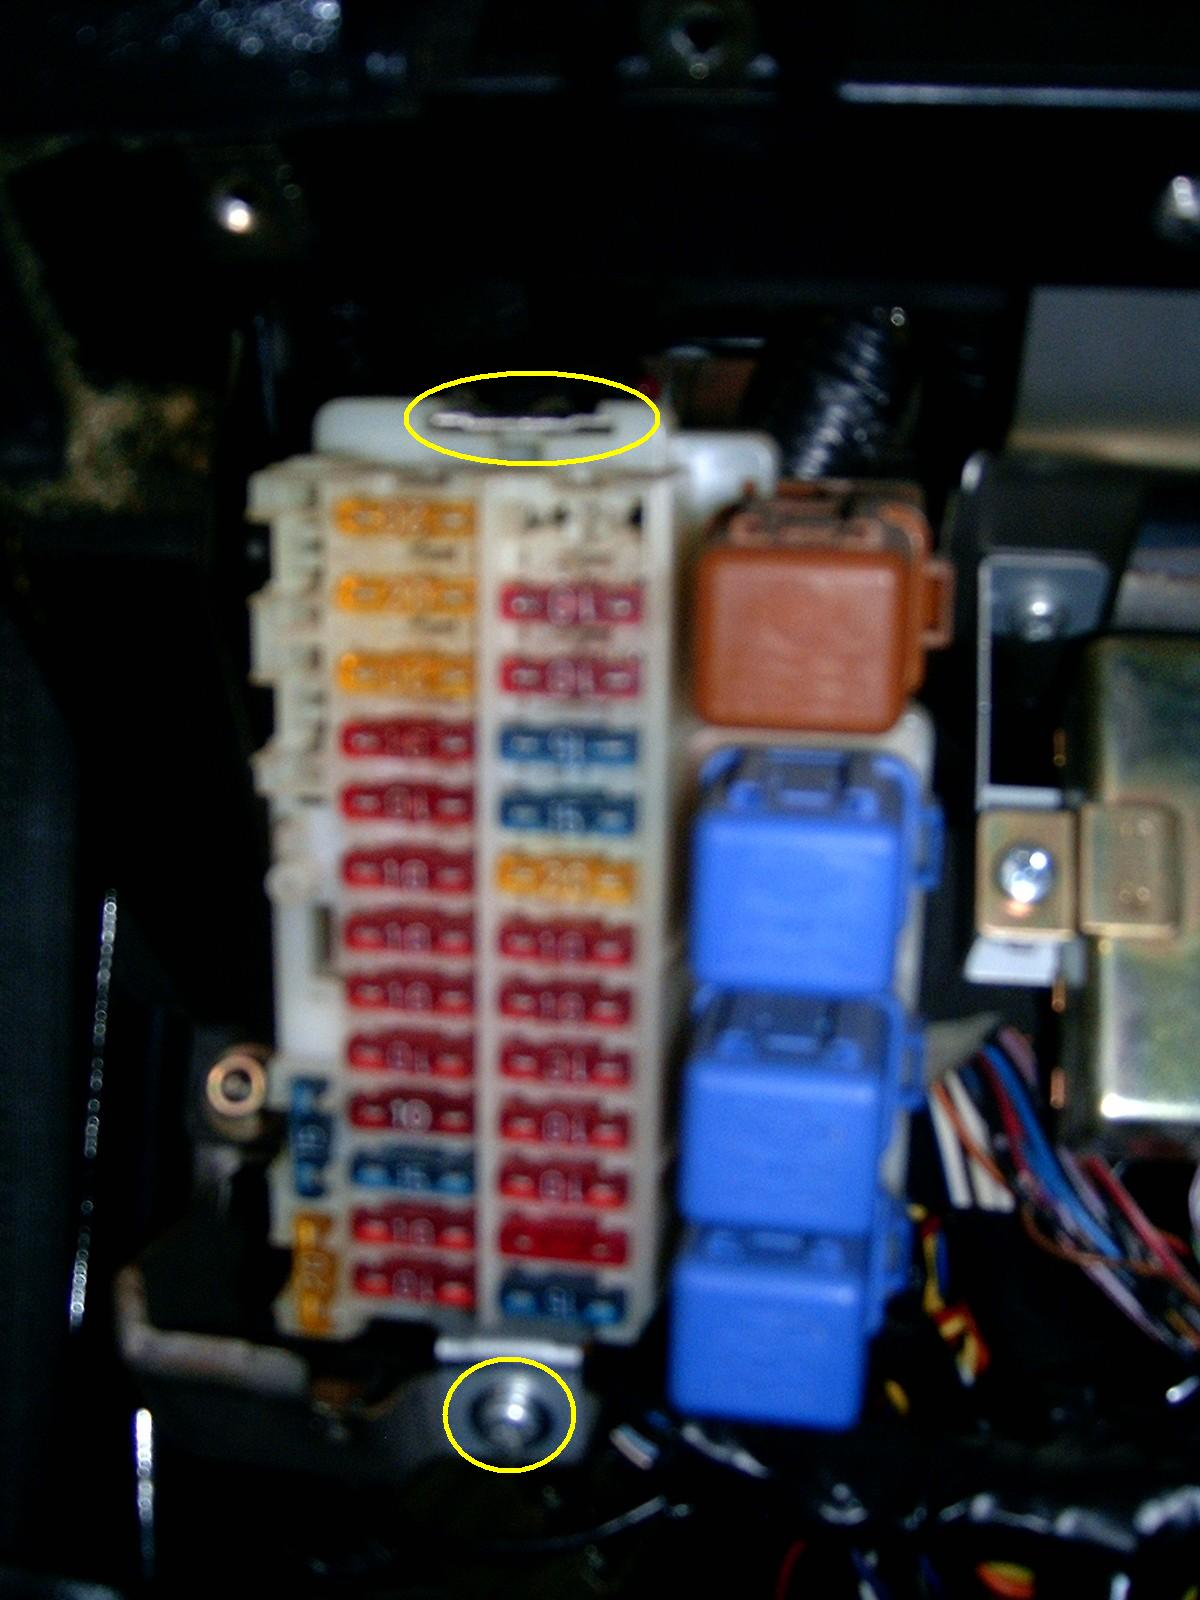 hight resolution of nissan maxima digital dash hud tutorial 2004 nissan maxima fuse box location 2005 nissan maxima fuse